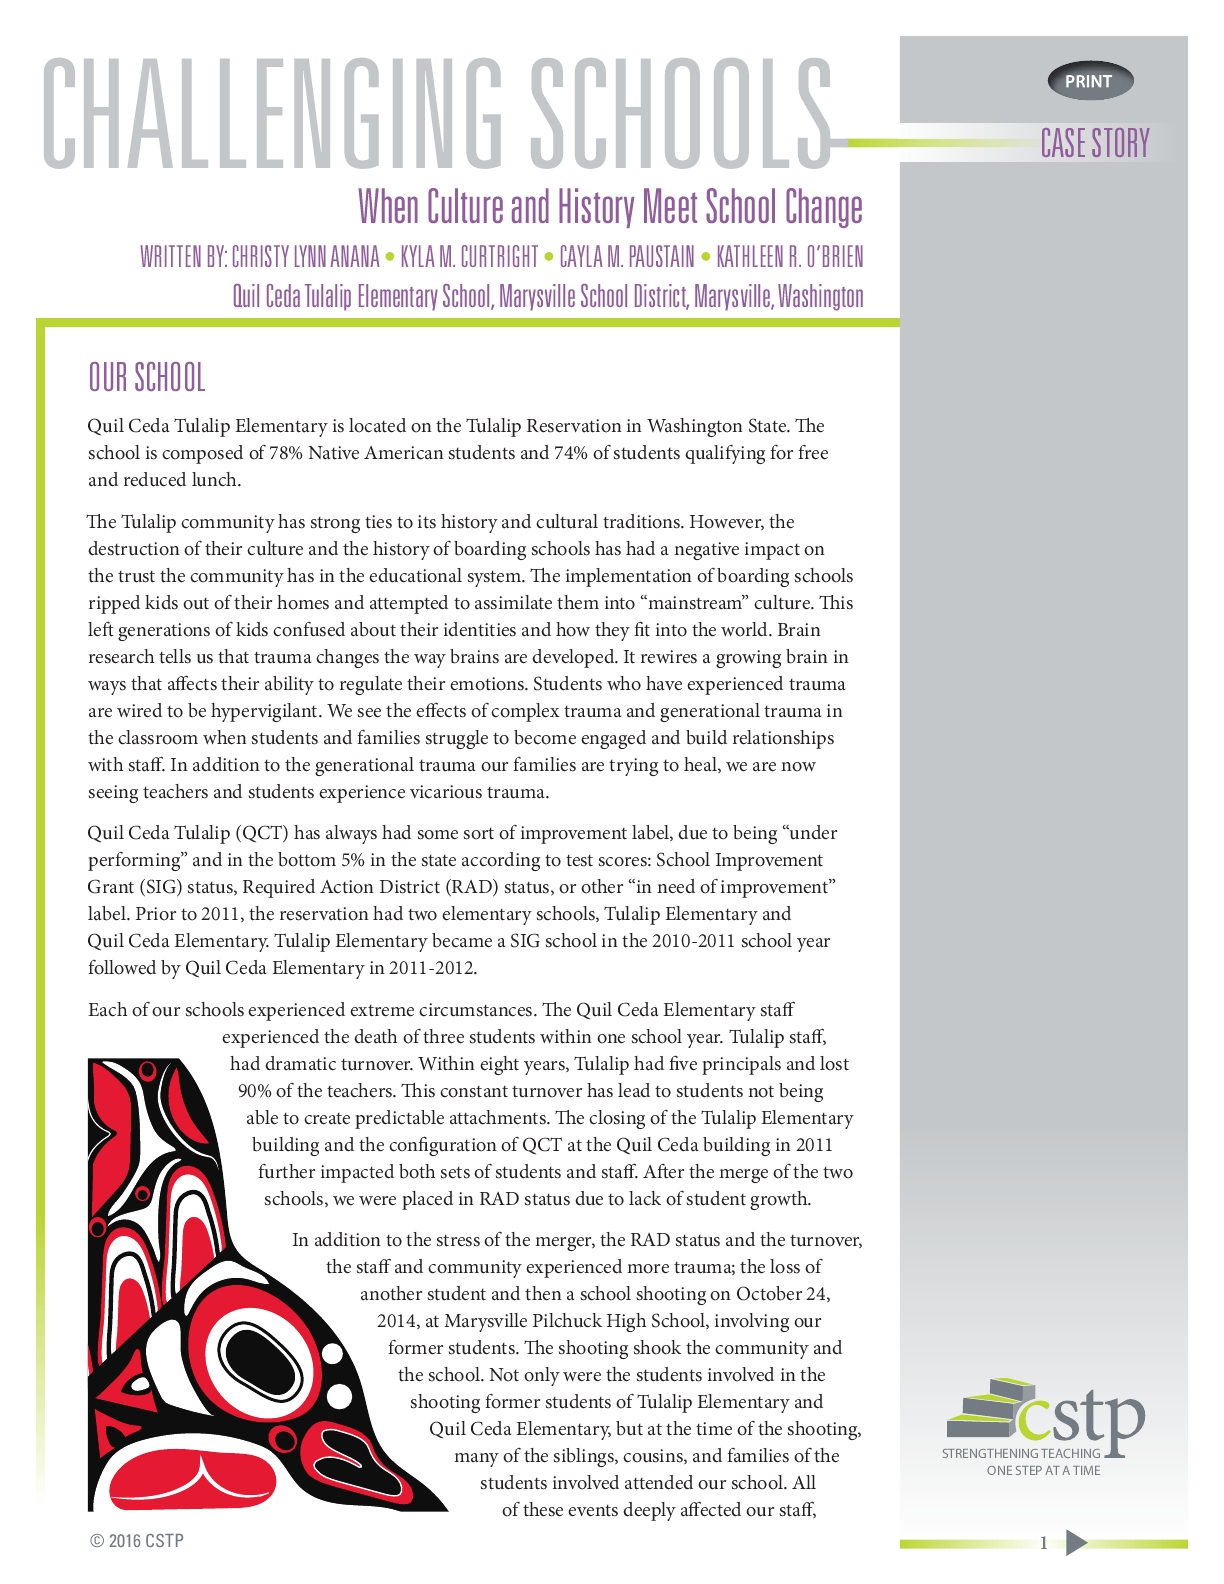 Challenging Schools: When Culture and History Meet School Change by Quil Ceda Tulalip Elementary, Marysville School District